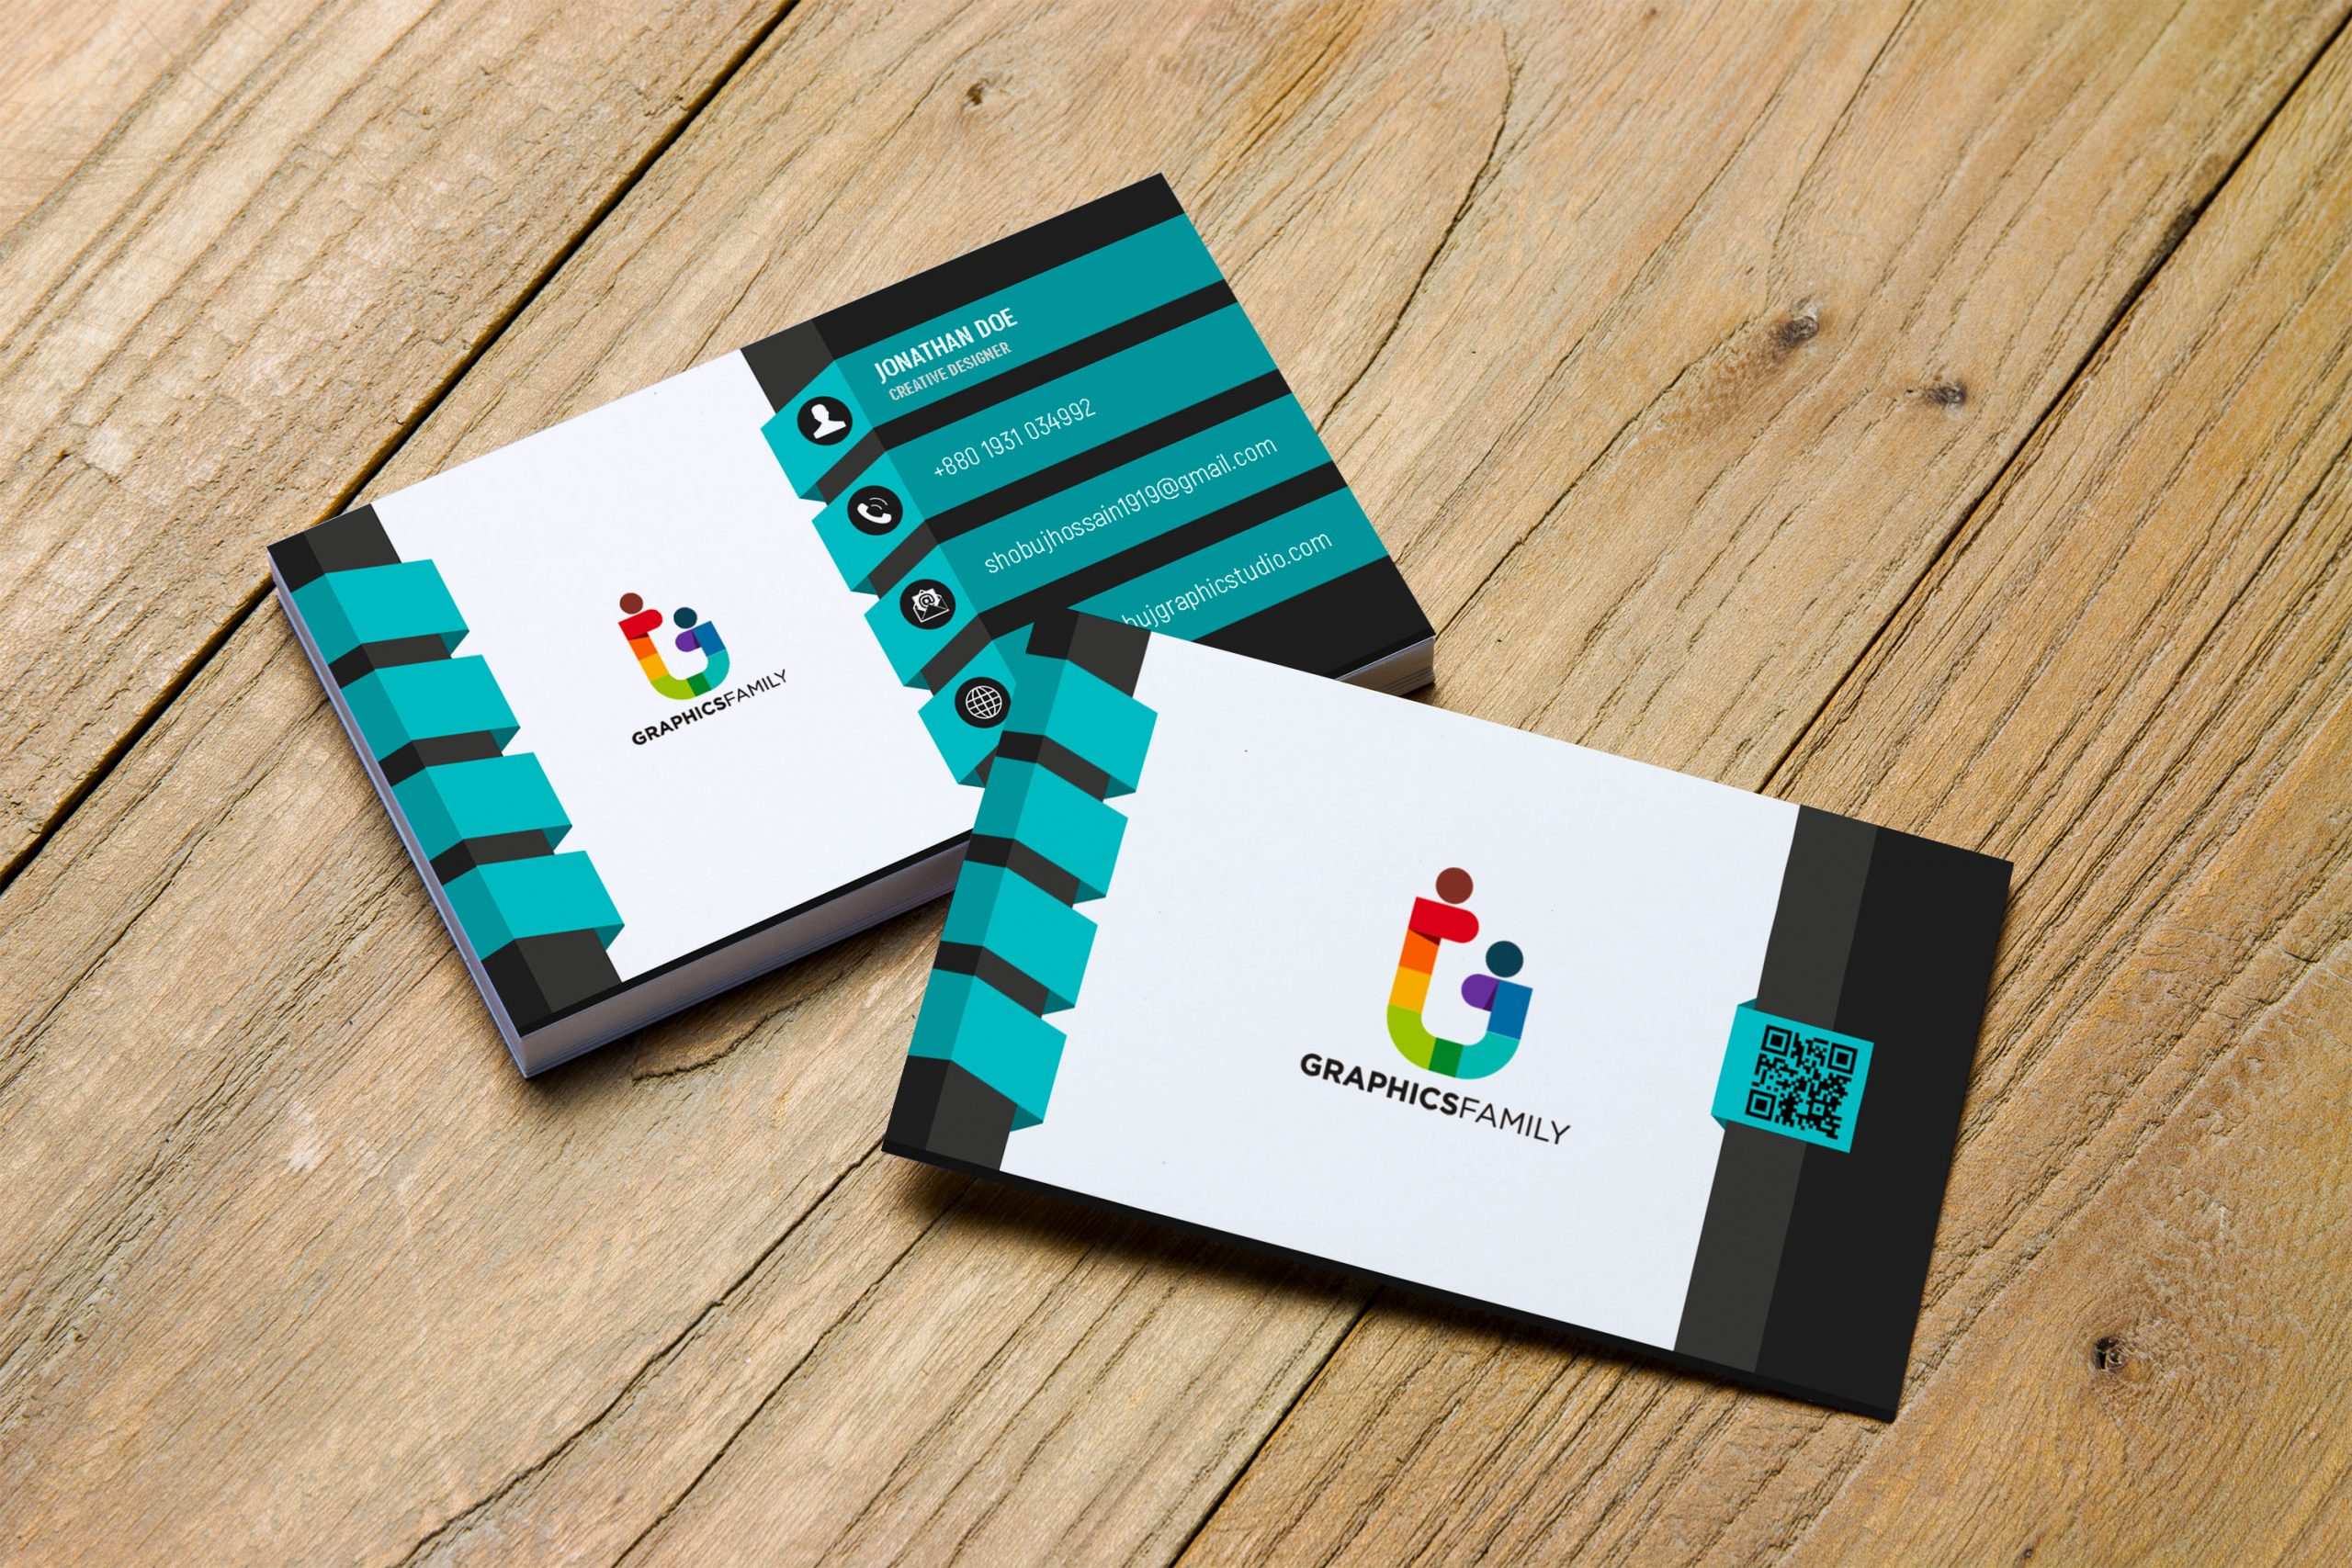 3D Creative Designer Business Card Template - GraphicsFamily